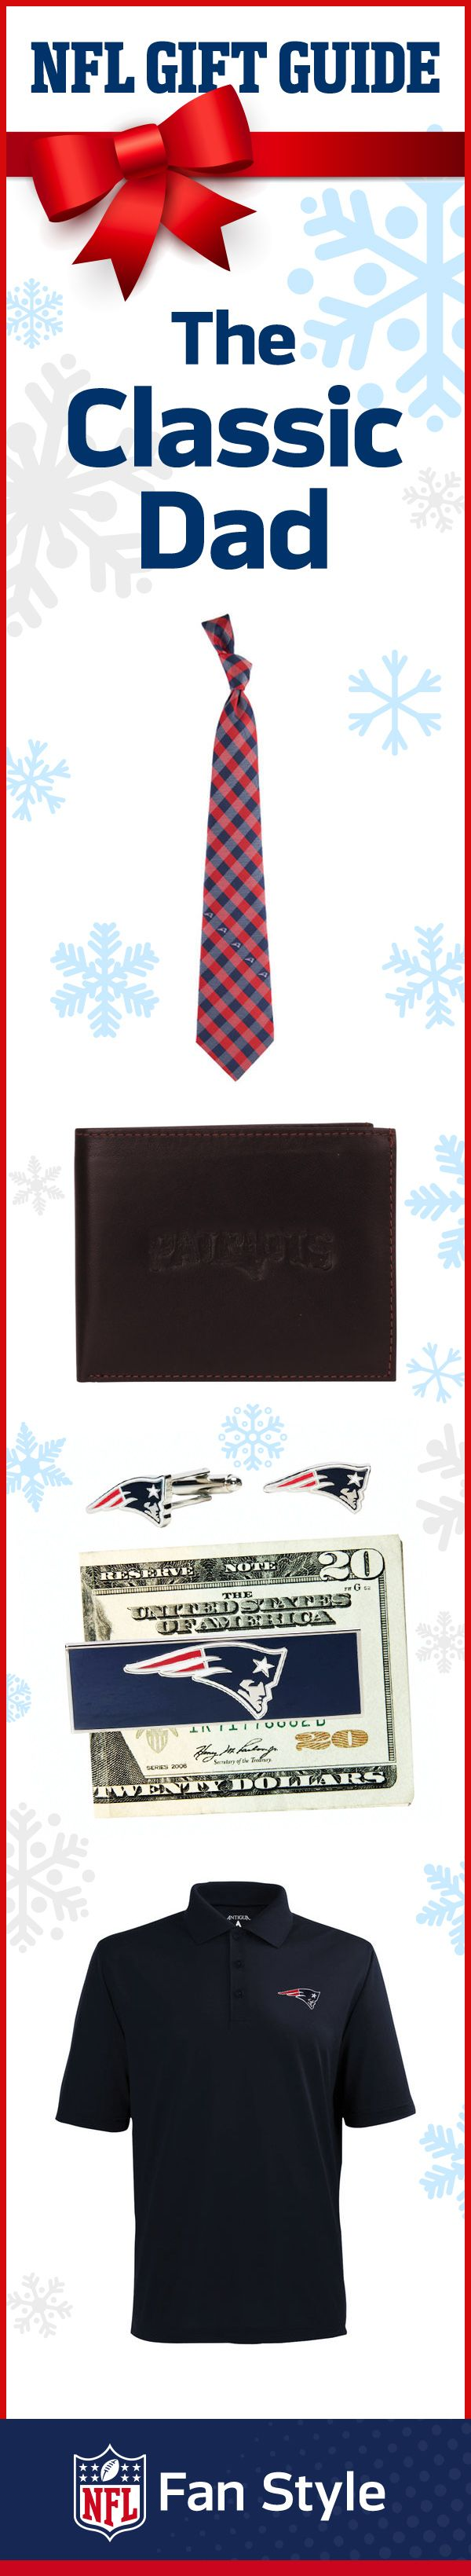 The 25+ best Patriots gifts ideas on Pinterest | New england ...